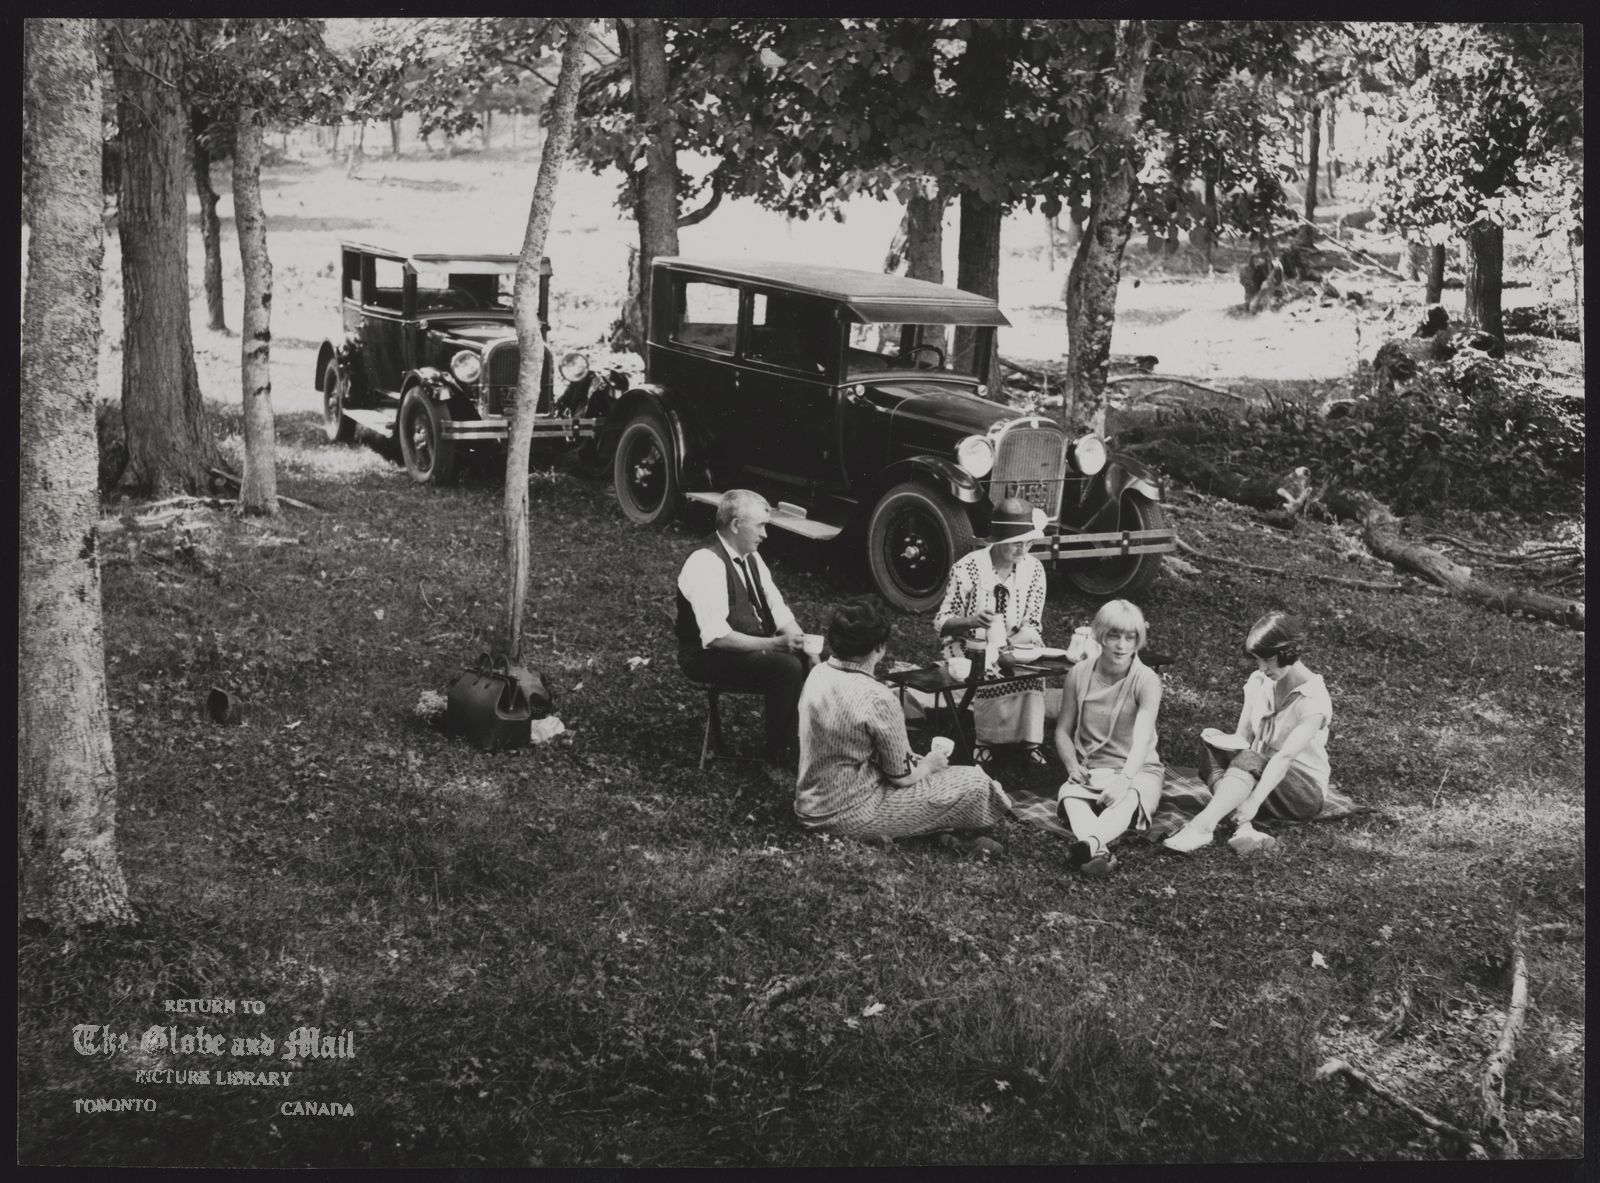 The notes transcribed from the back of this photograph are as follows: Neg. 25214-02 Picnic at roadside near Port Carling 1925.